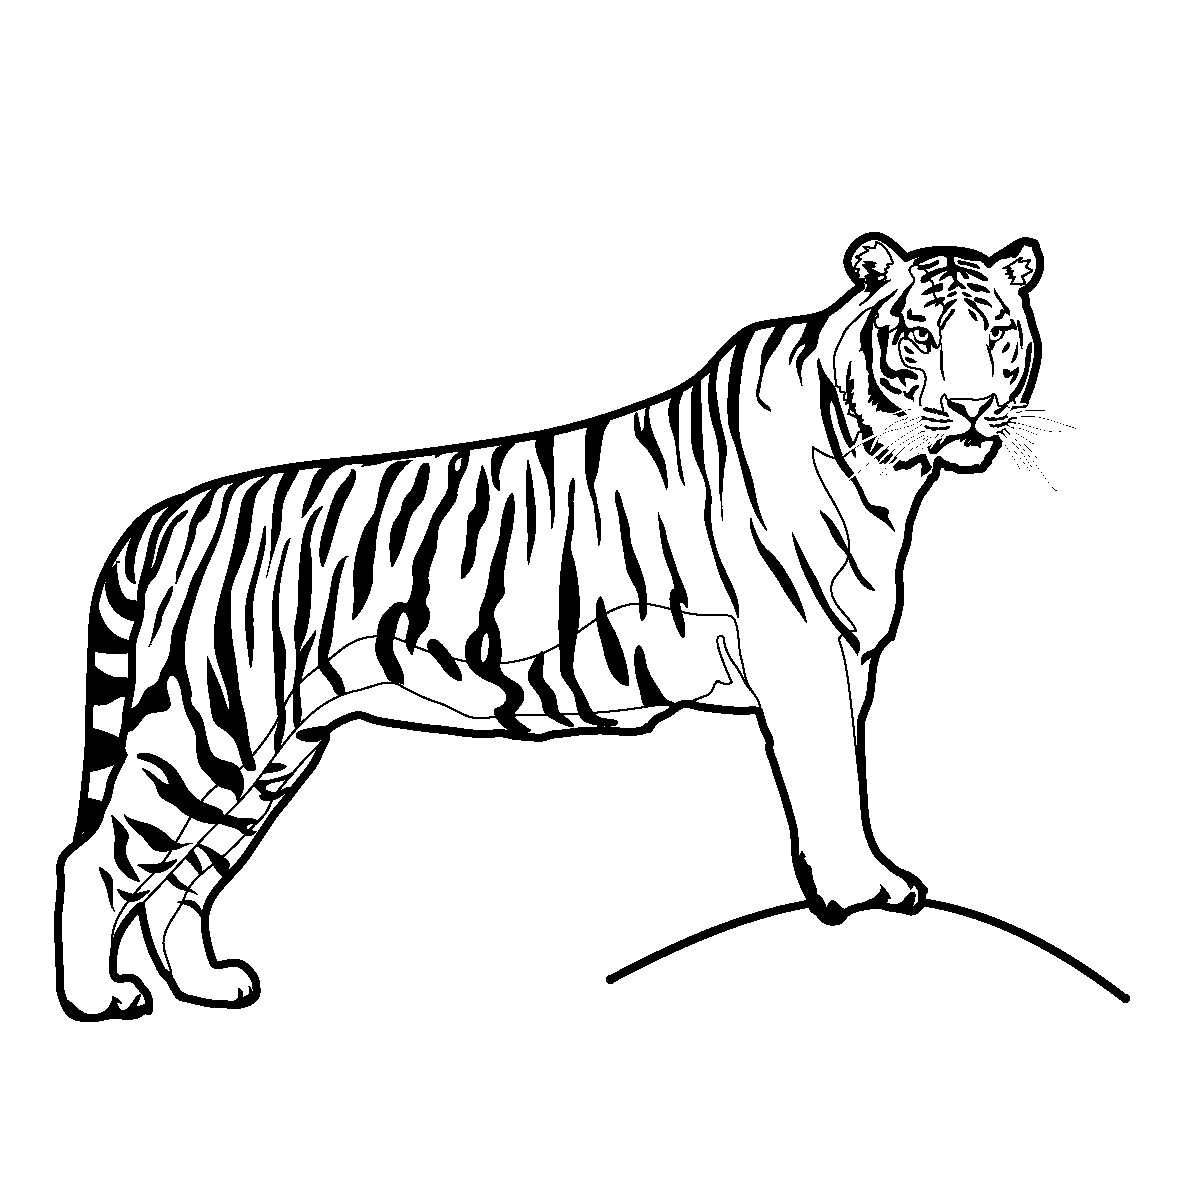 tiger images for colouring free printable tiger coloring pages for kids colouring for images tiger